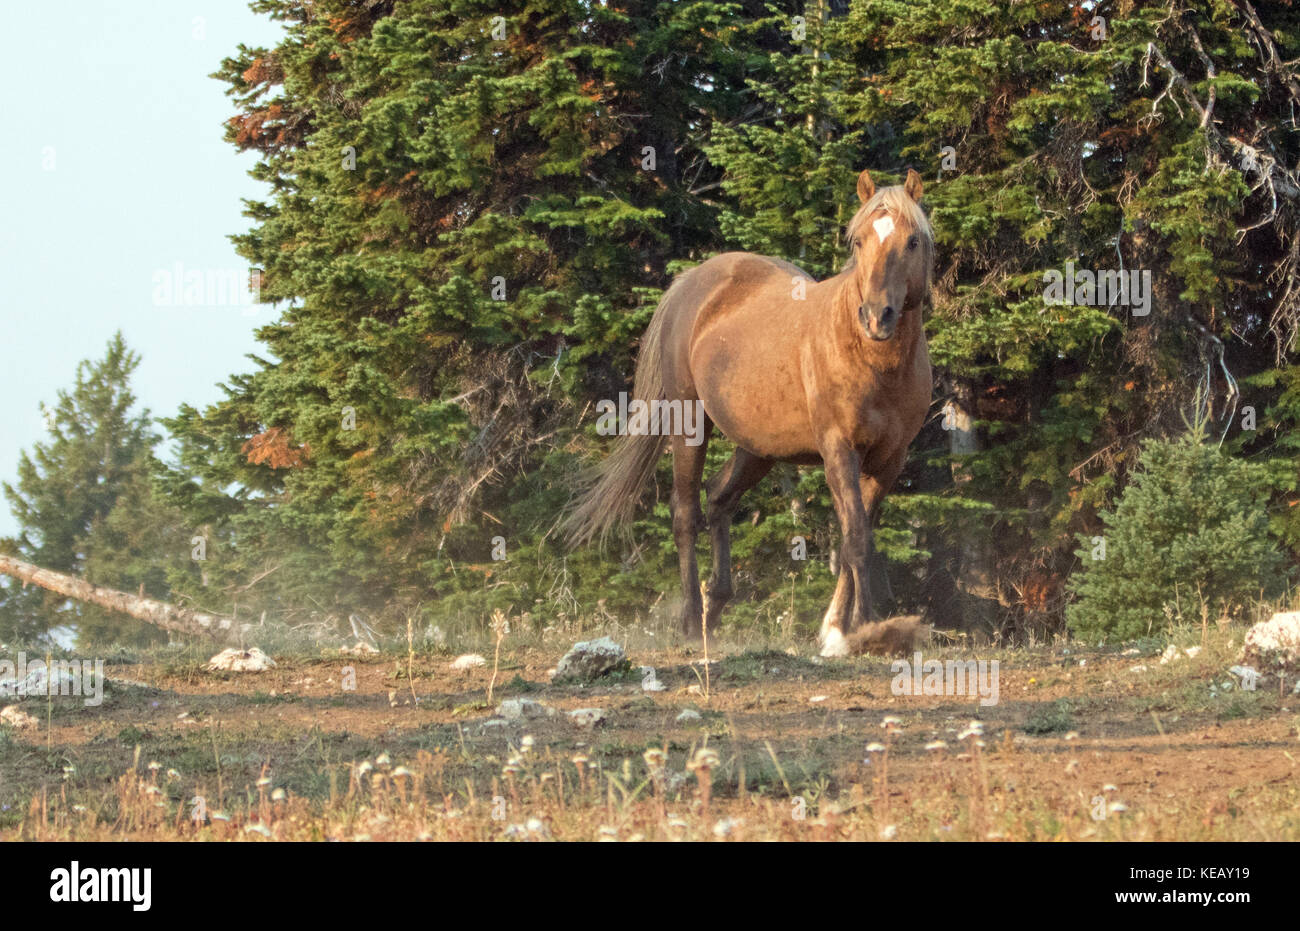 Sooty Palomino High Resolution Stock Photography And Images Alamy